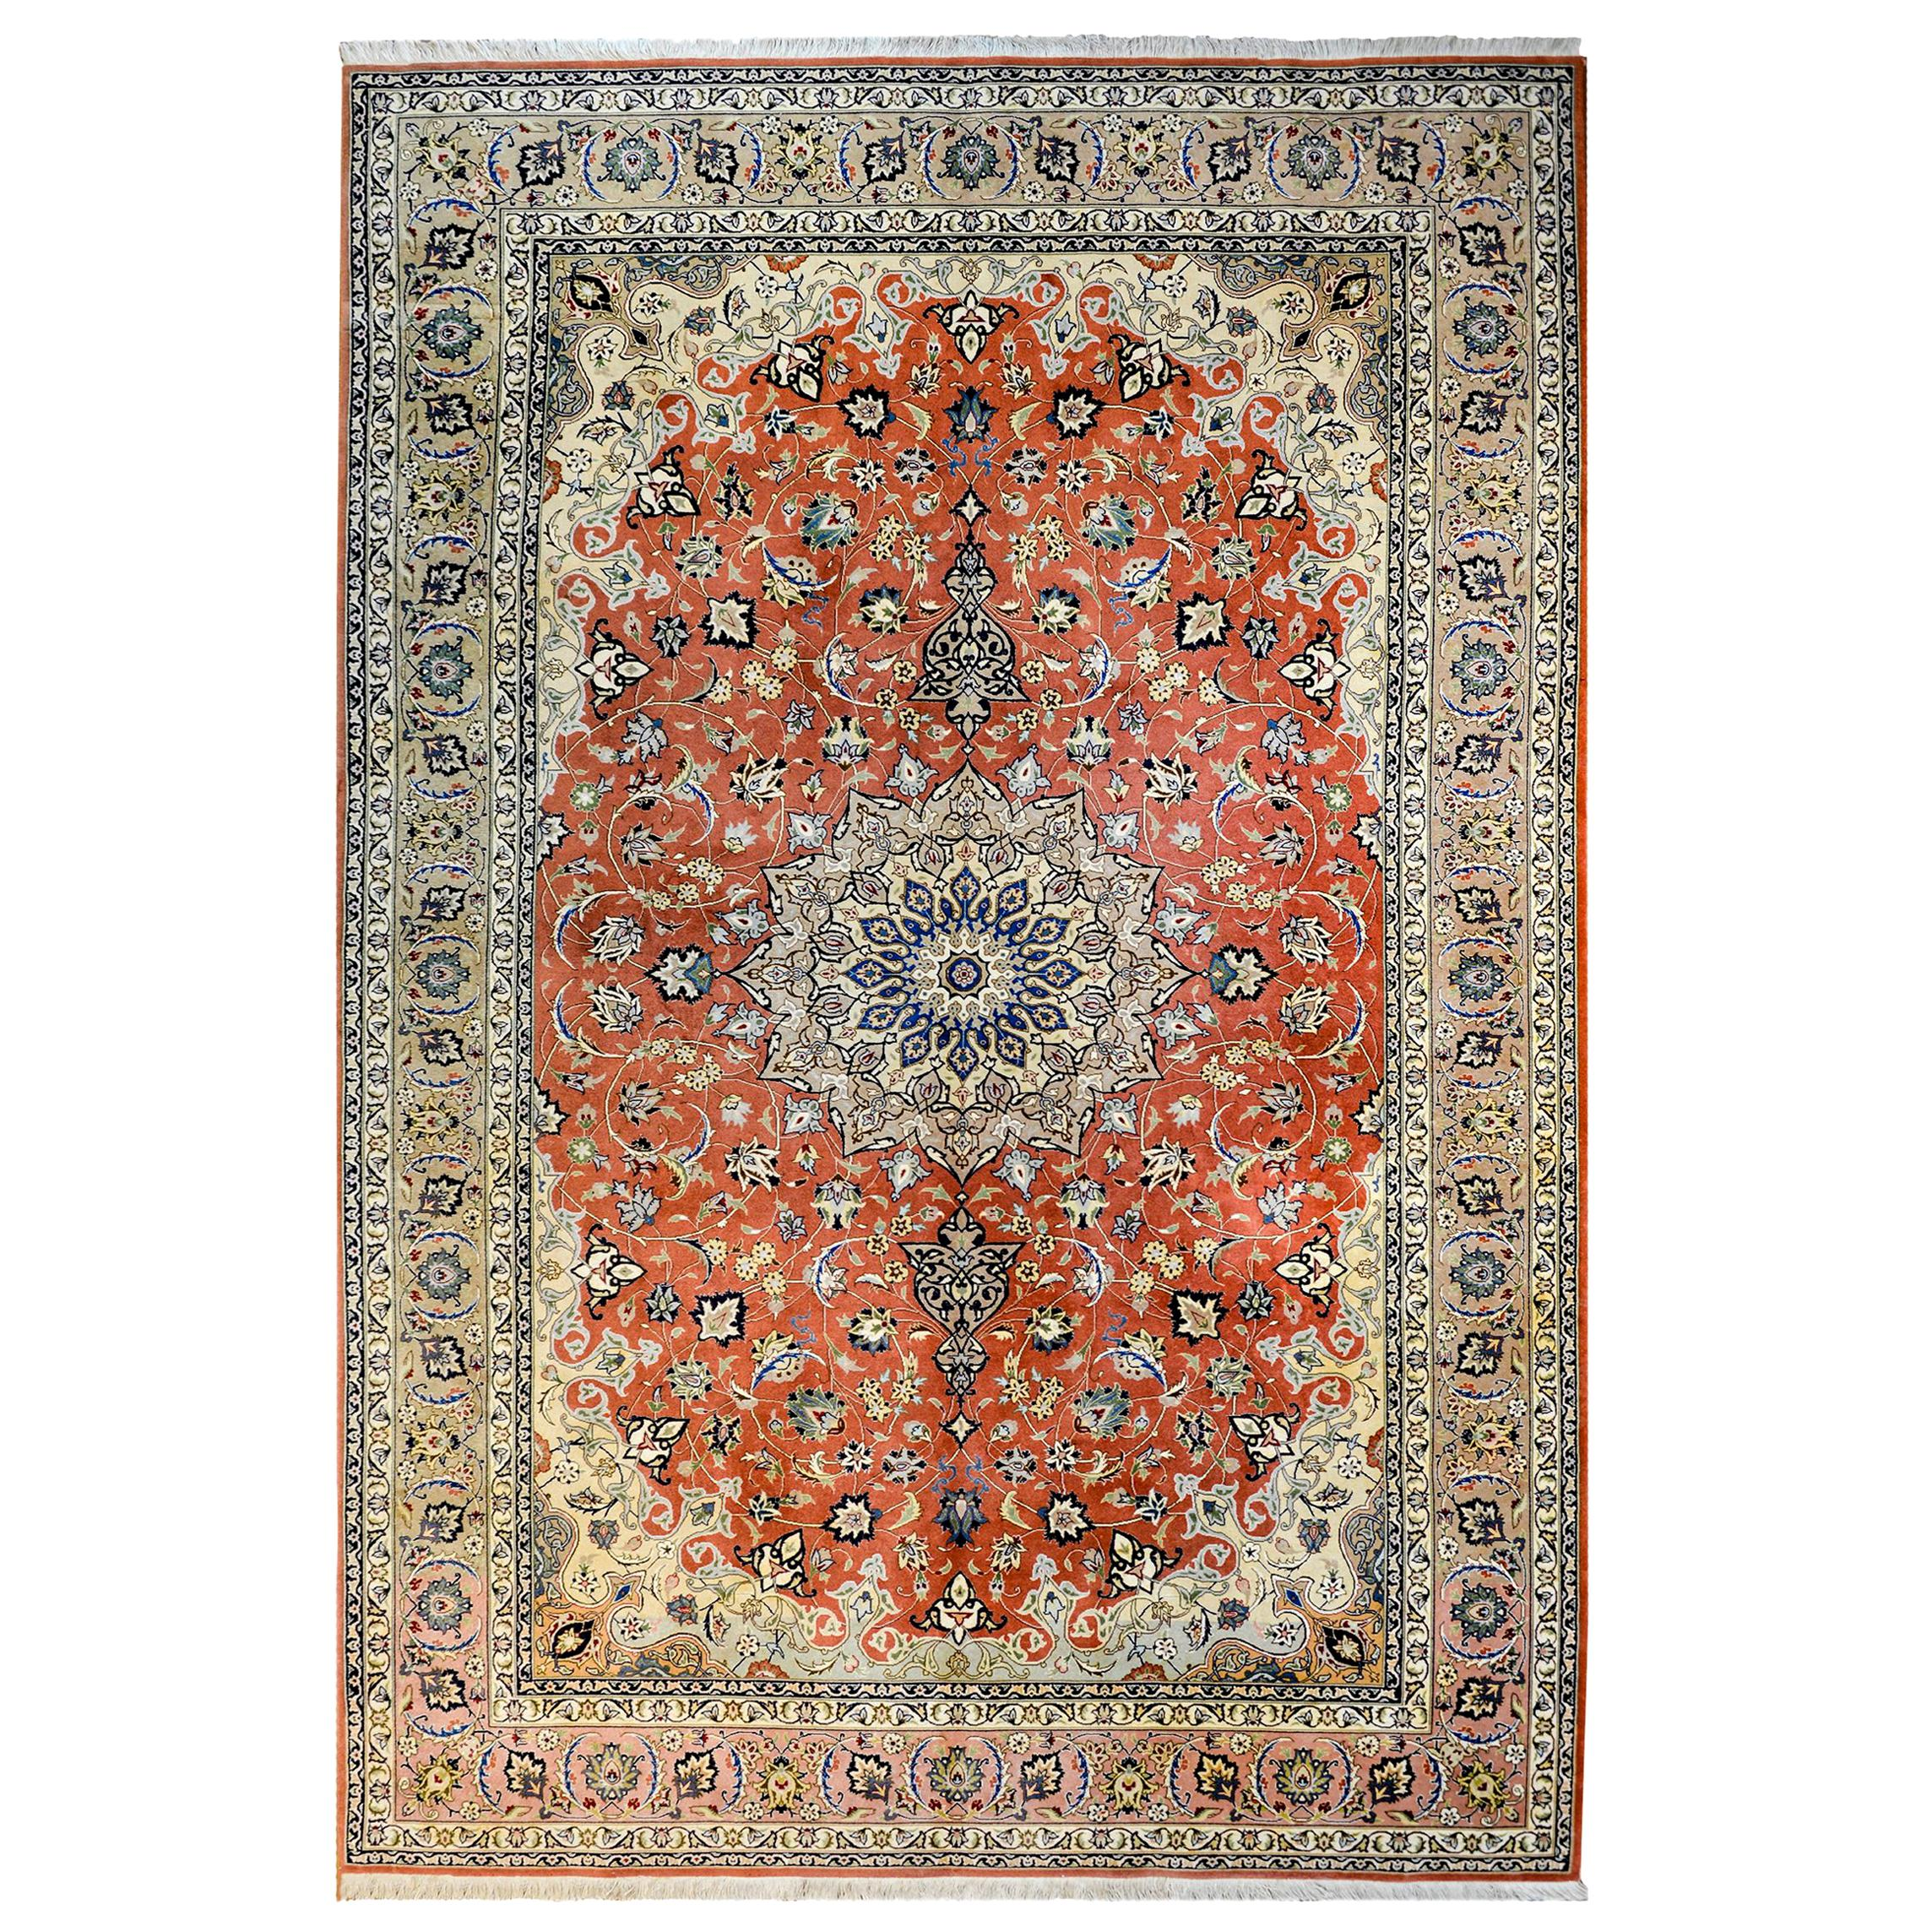 Extremely Fine Late 20th Century Tabriz Rug